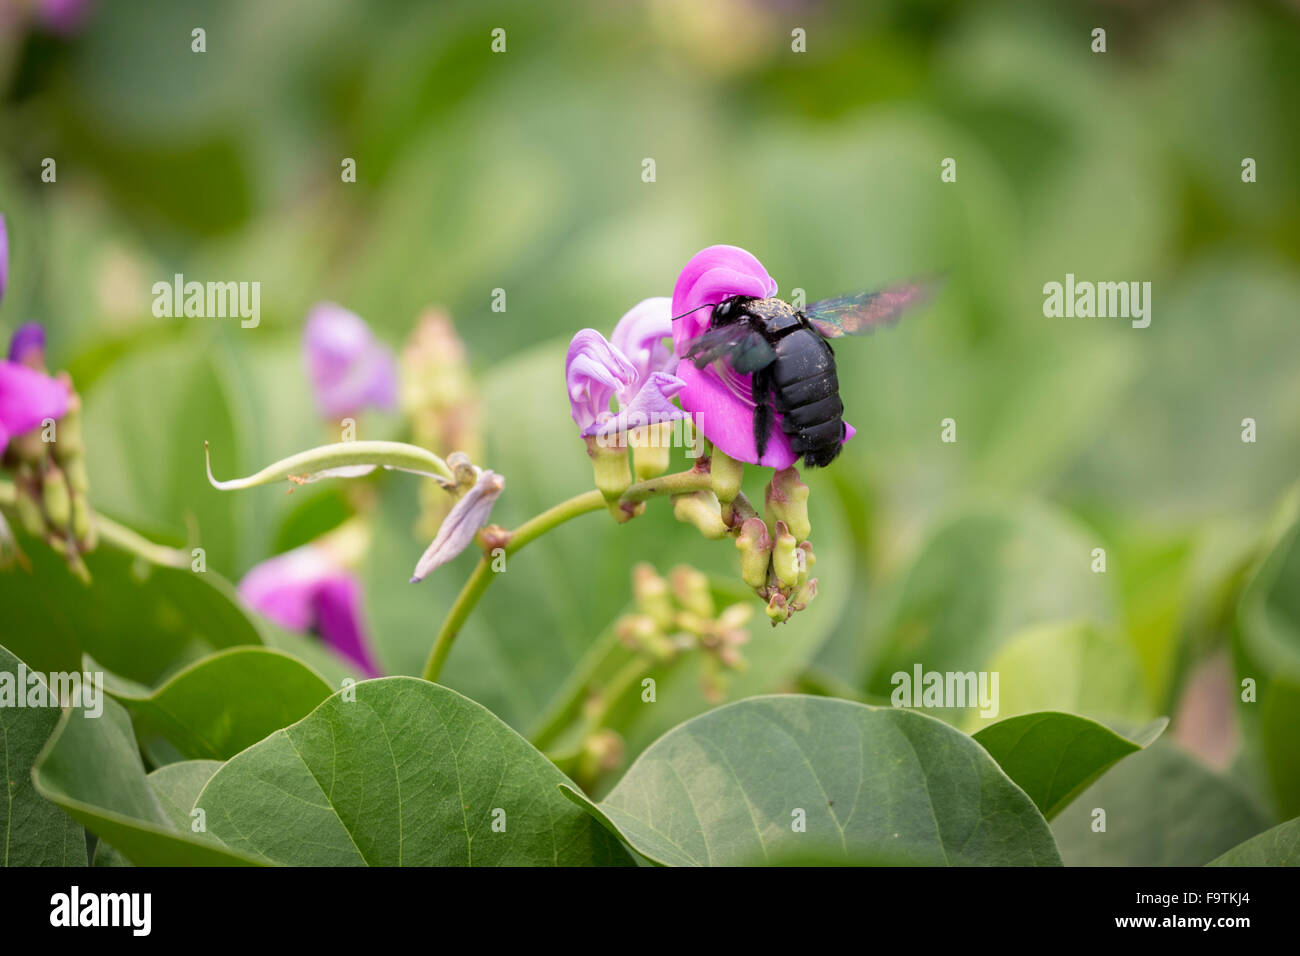 Tropical carpenter bee, Xylocopa latipes, pollinating a flower - Stock Image